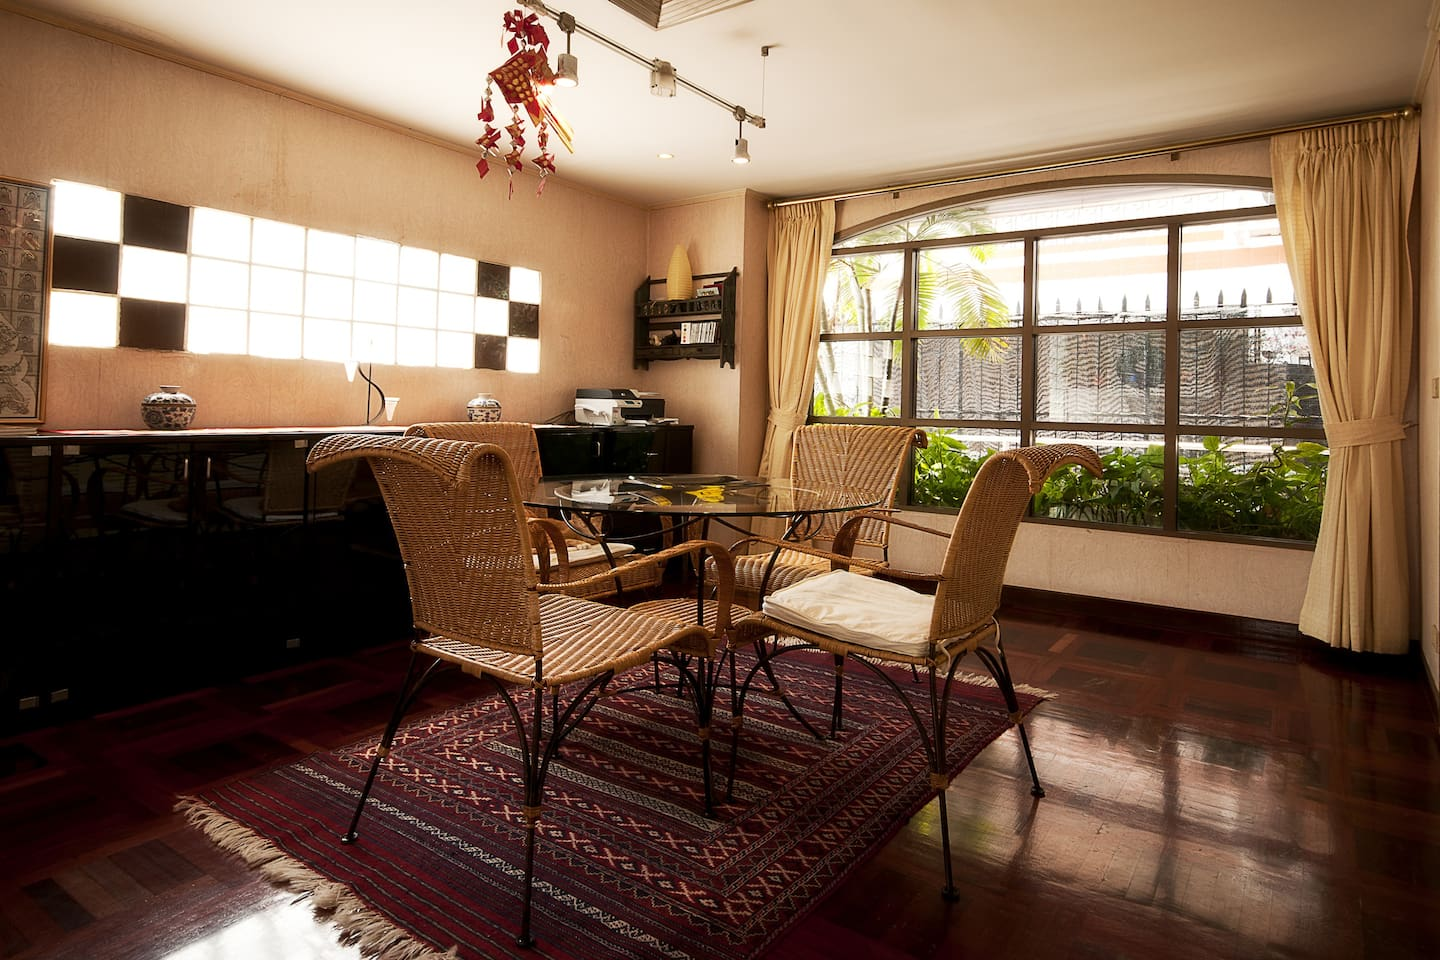 This townhouse is a quiet sanctuary mid-Sukhumvit with stylish interior